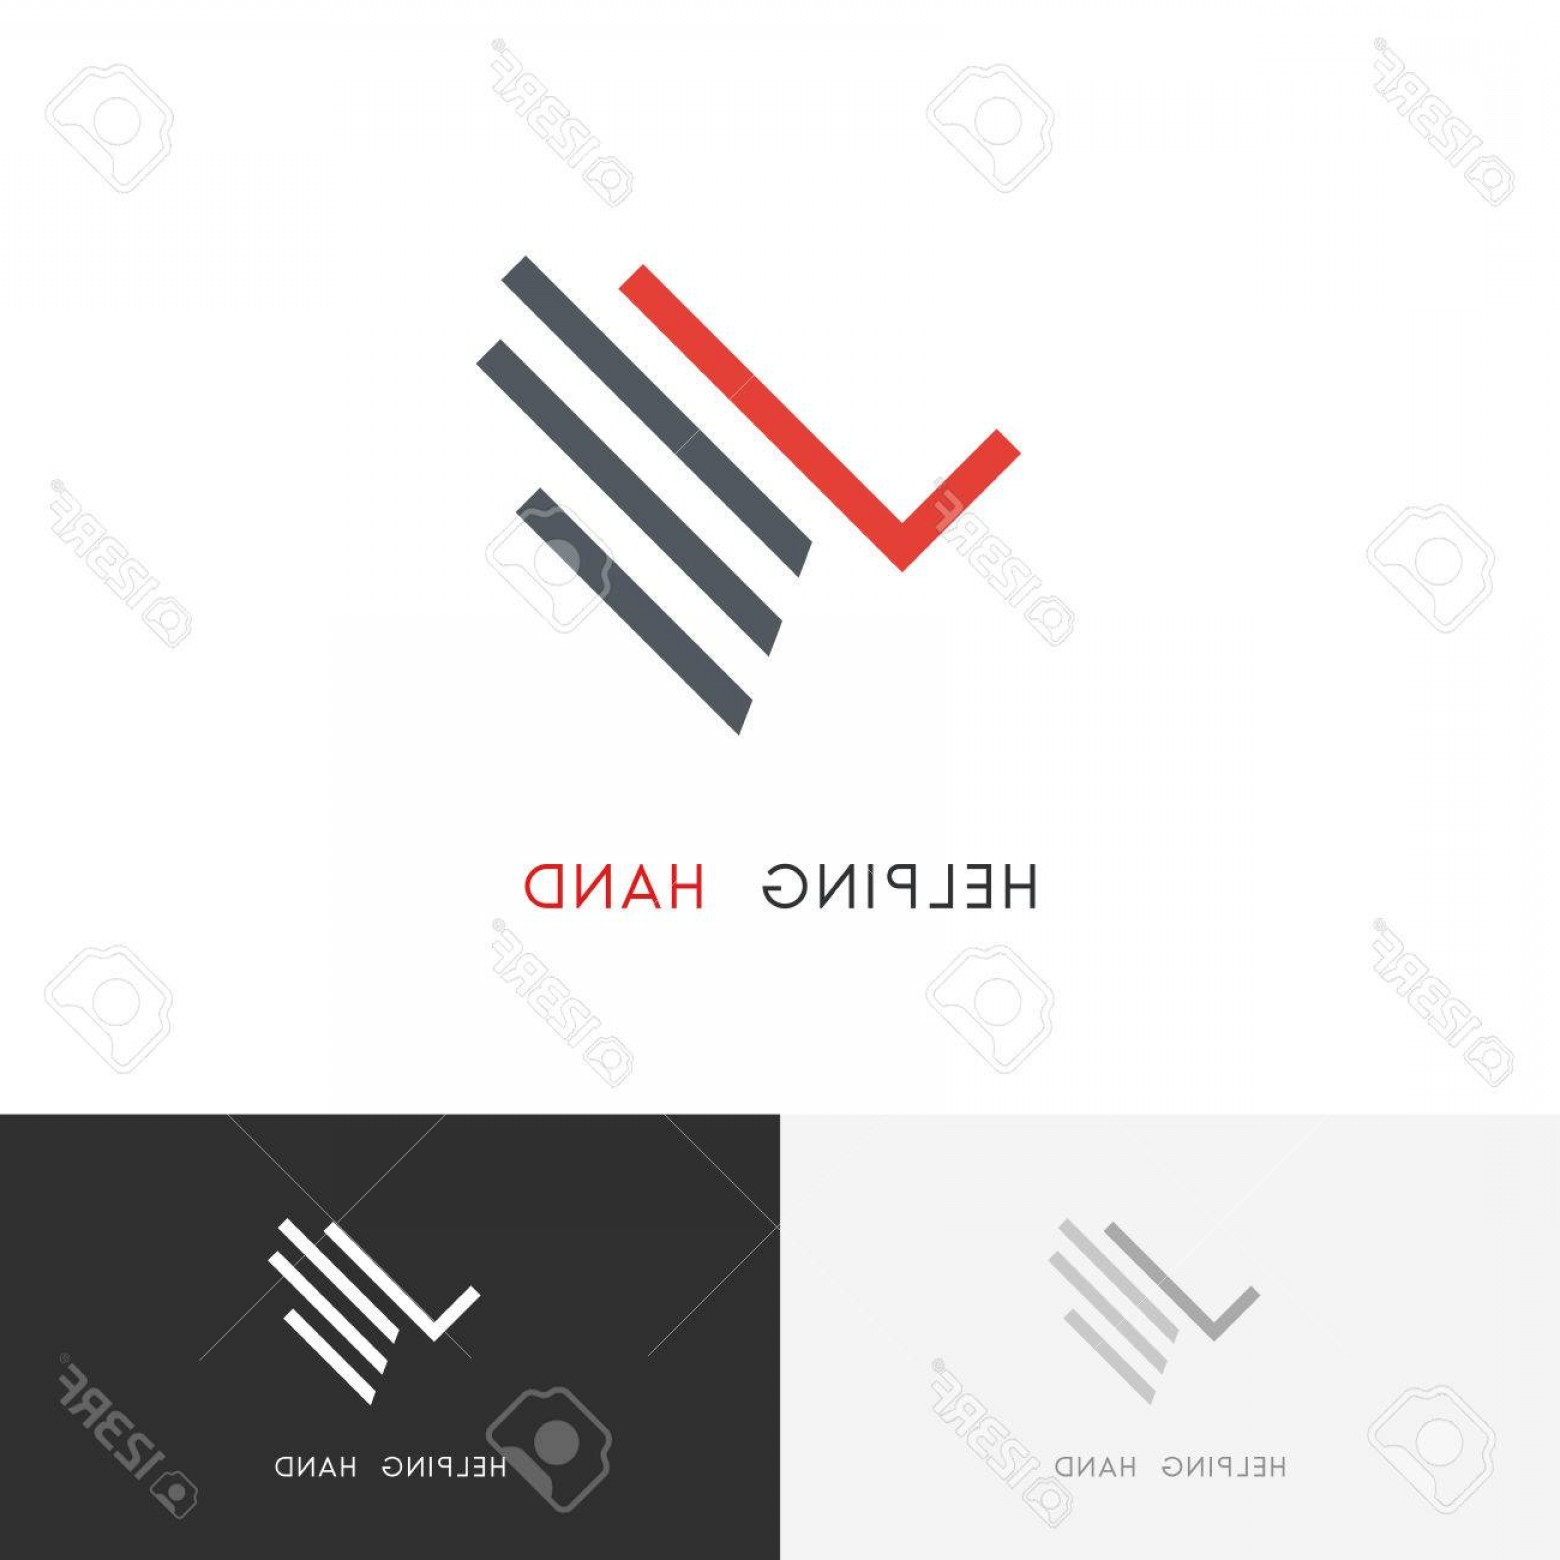 Charity Meter Vector: Photostock Vector Helping Hand Logo Palm With Check Mark Or Tick Symbol Business Success And Charity Work